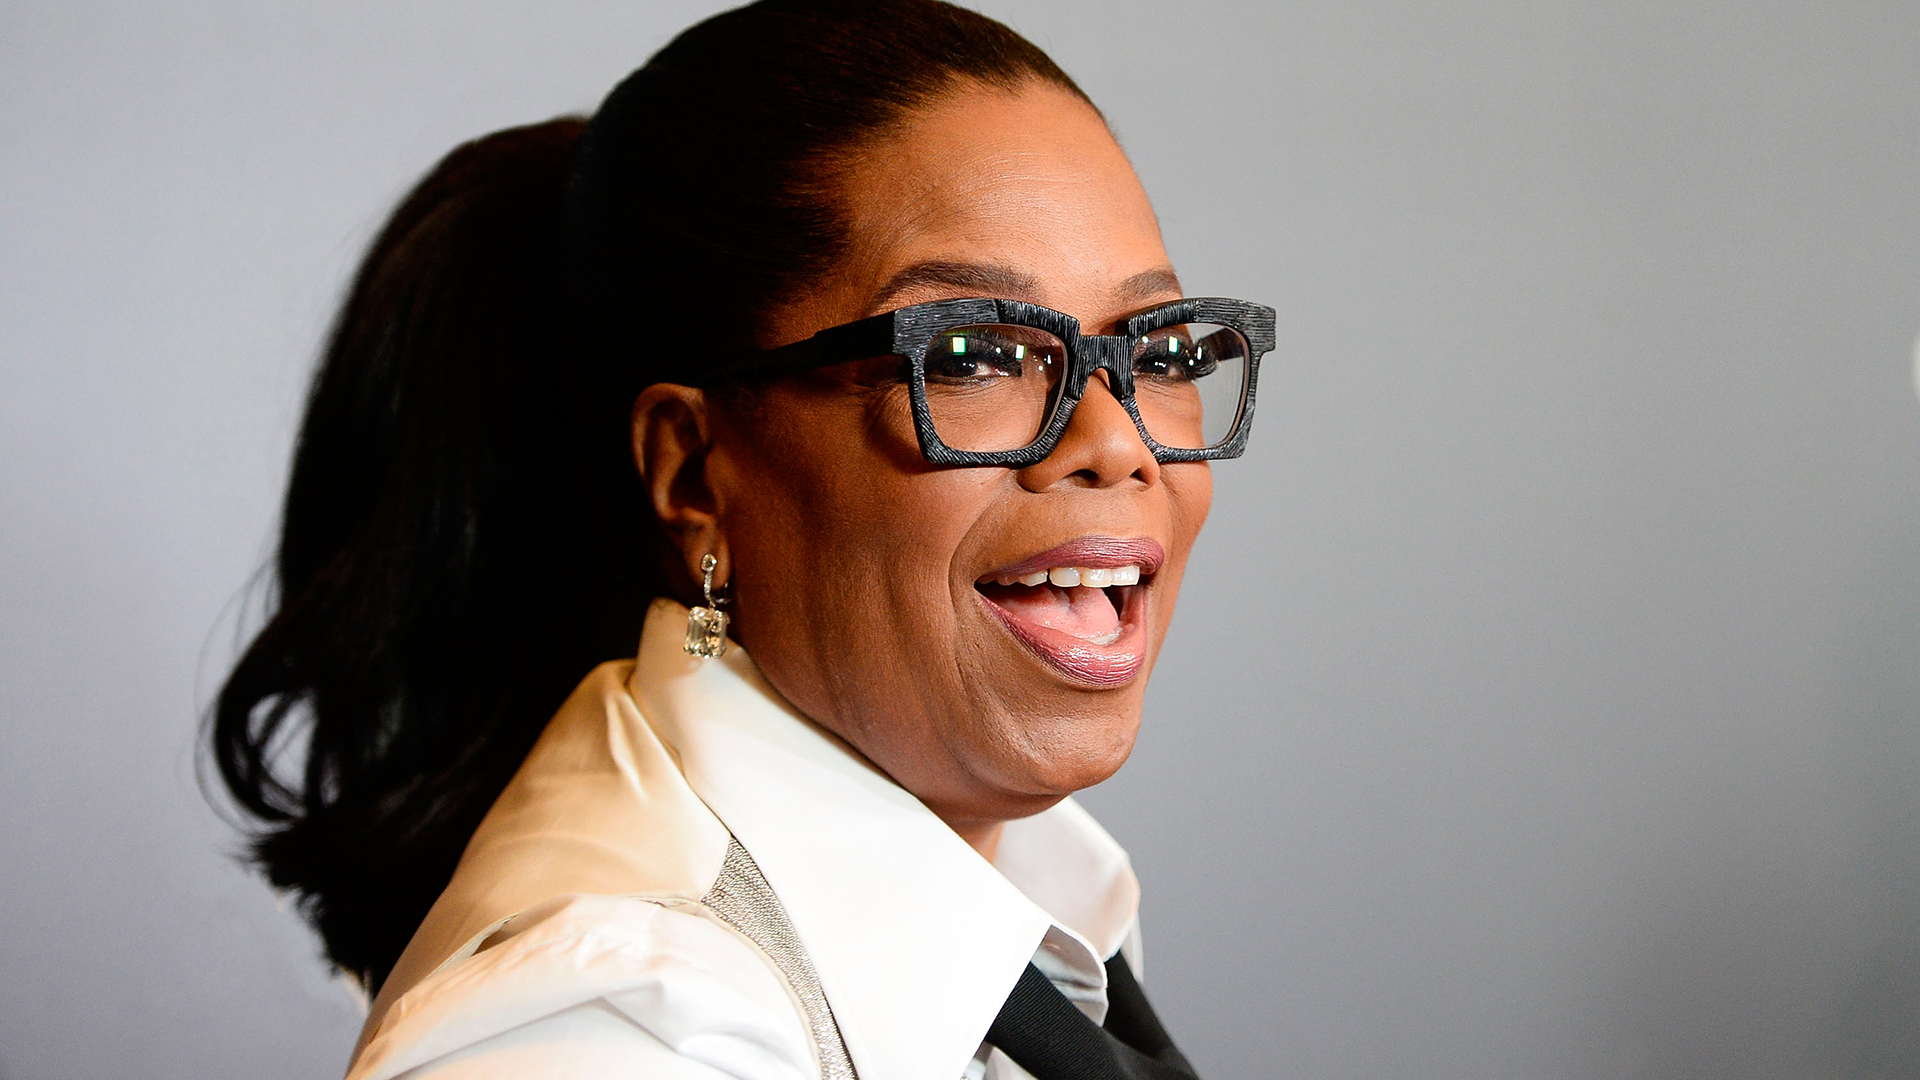 January 29, 1954: Oprah Was Born and Became One of the World's Most Influential People